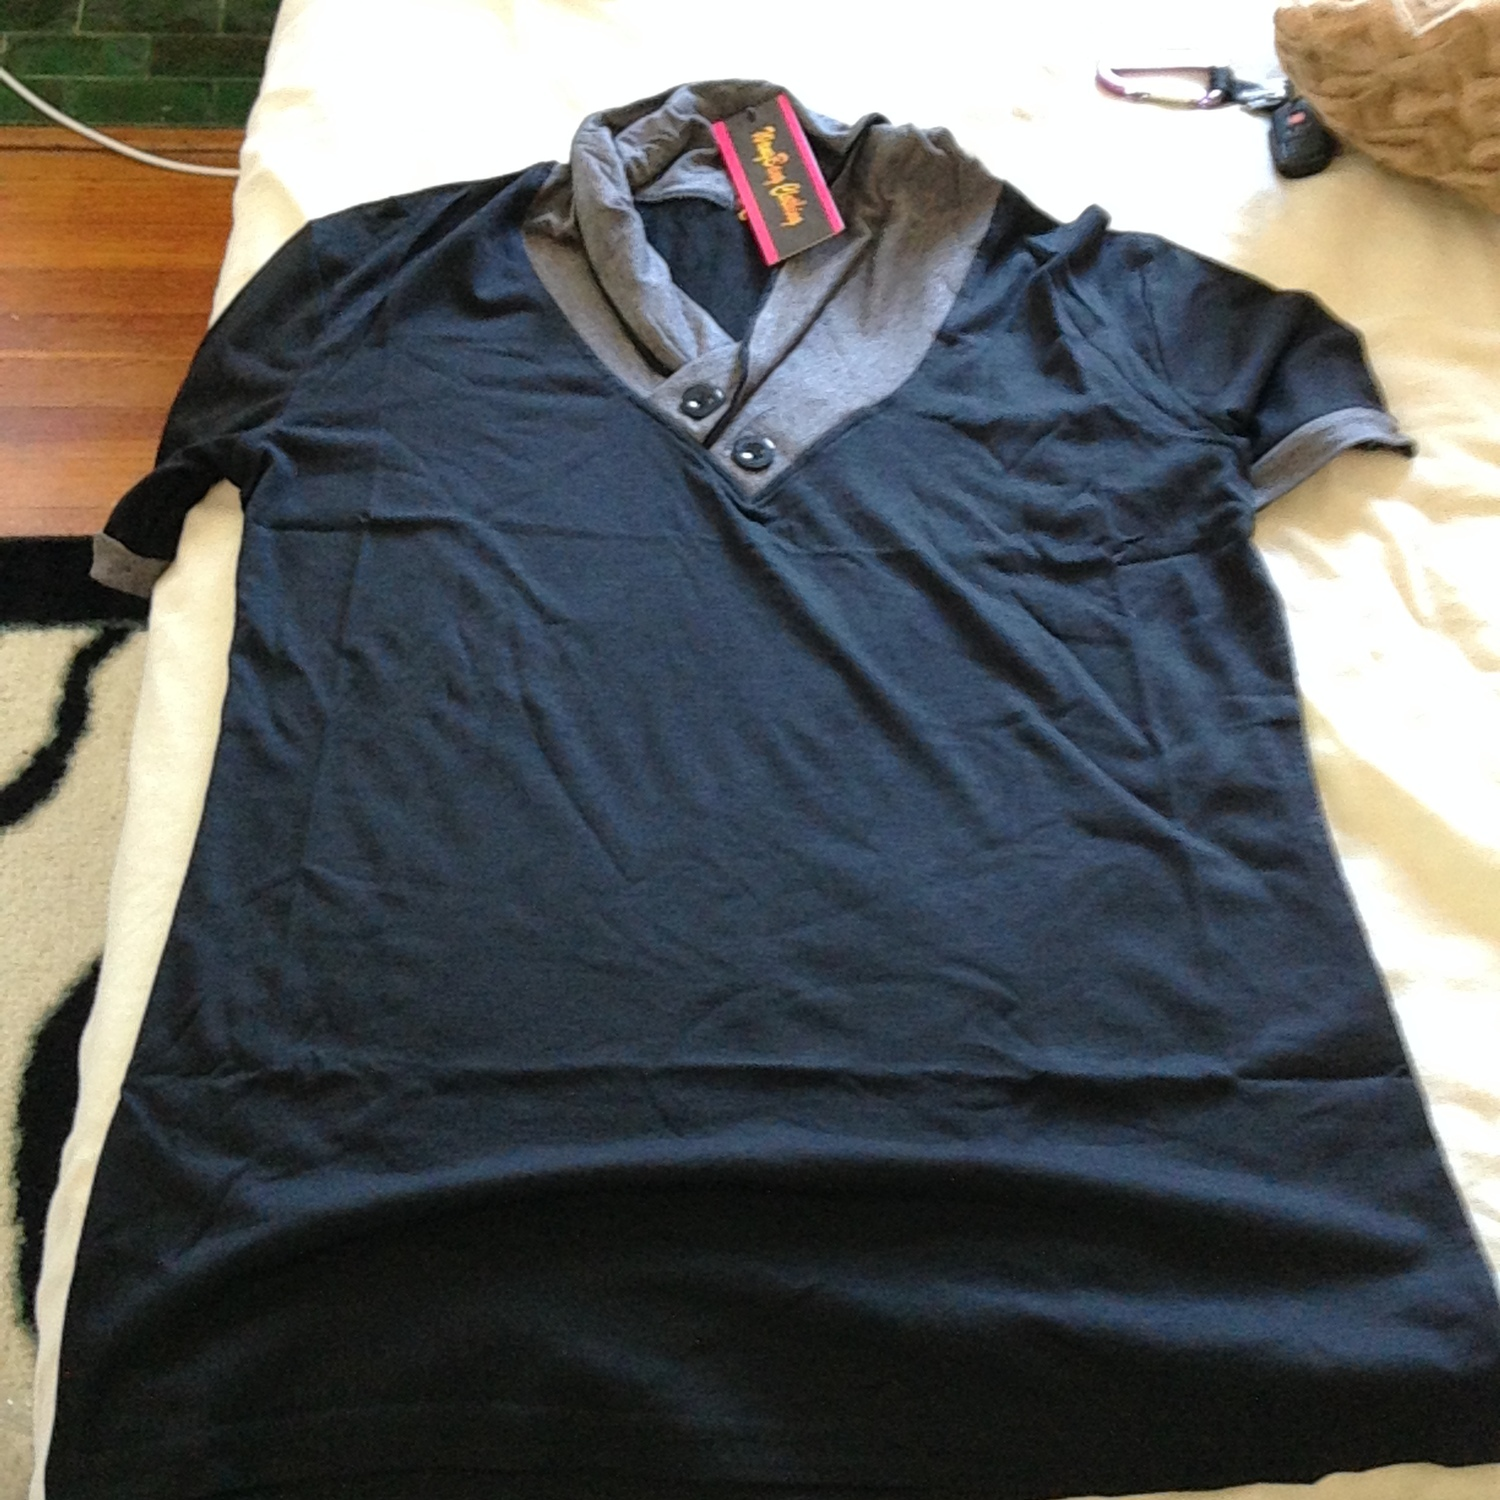 The 8 Shirt From China As Told Over Brunch